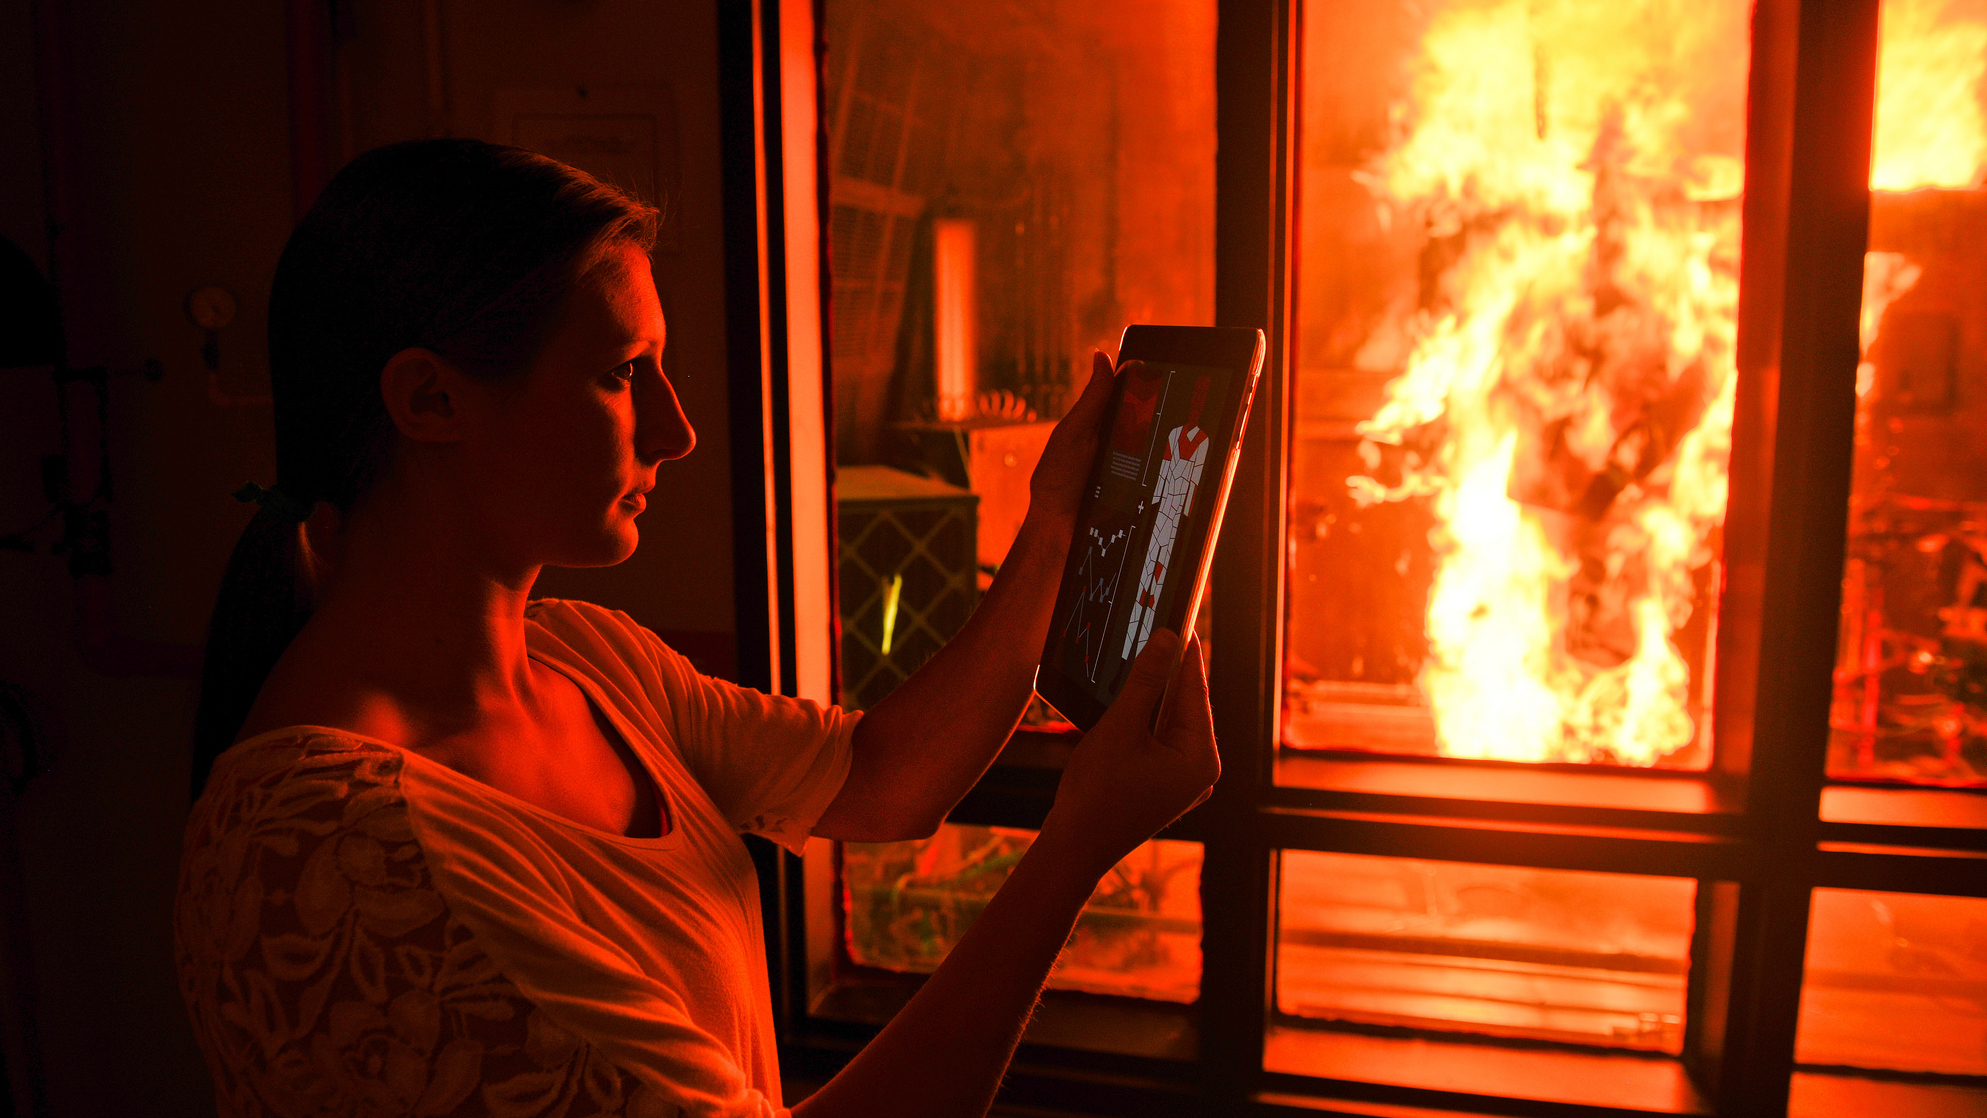 A researcher looks at results on an iPad while the PyroMan manikin is aflame in a glass chamber